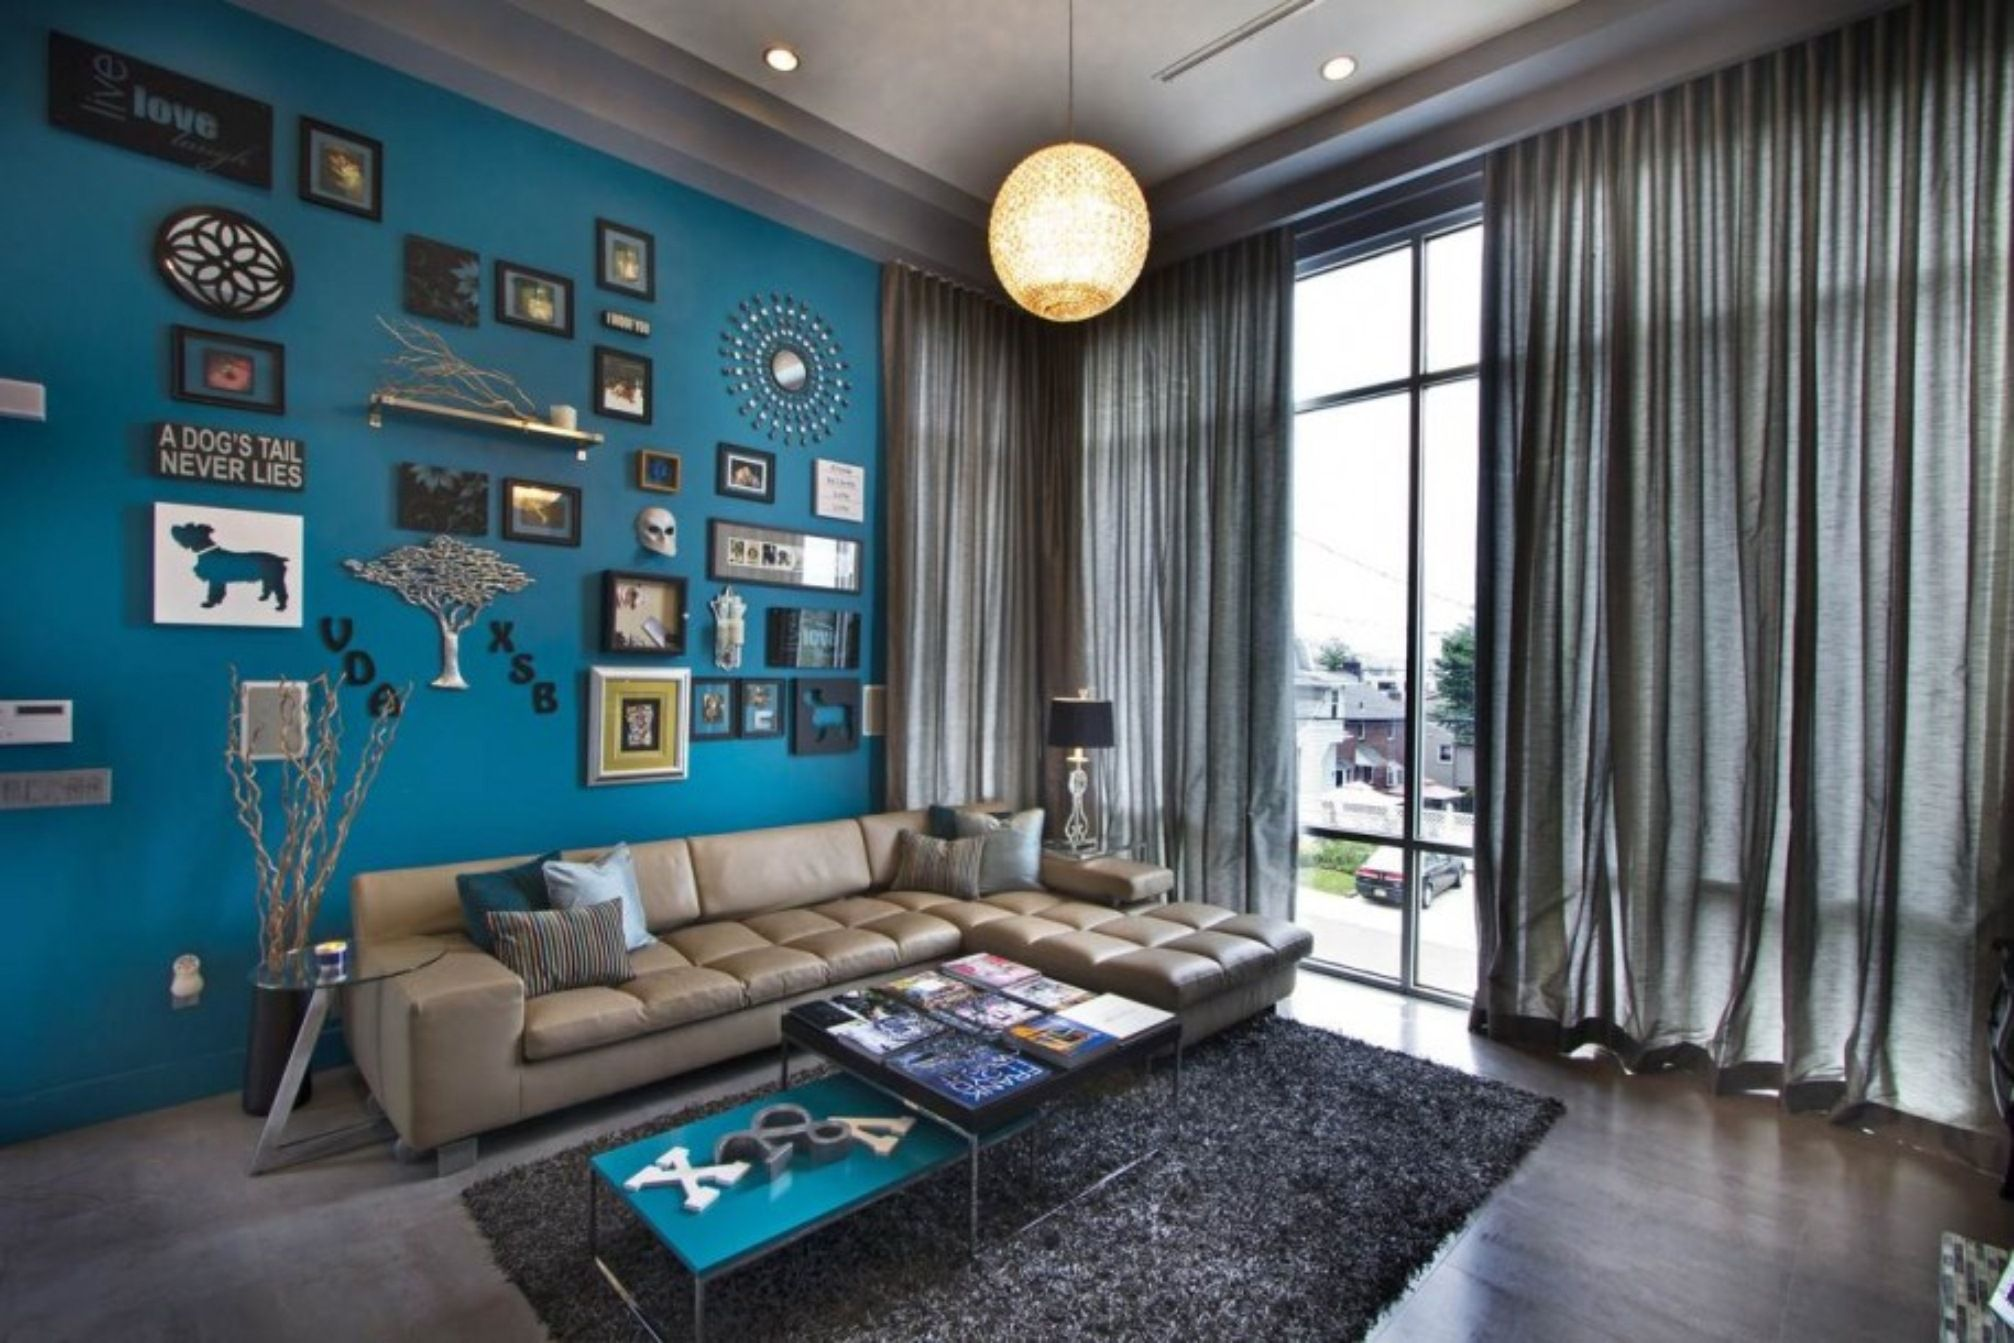 Full Size Of Living Room Royal Blue And White Living Room Sea Blue Decor What Colour Blue Walls Living Room